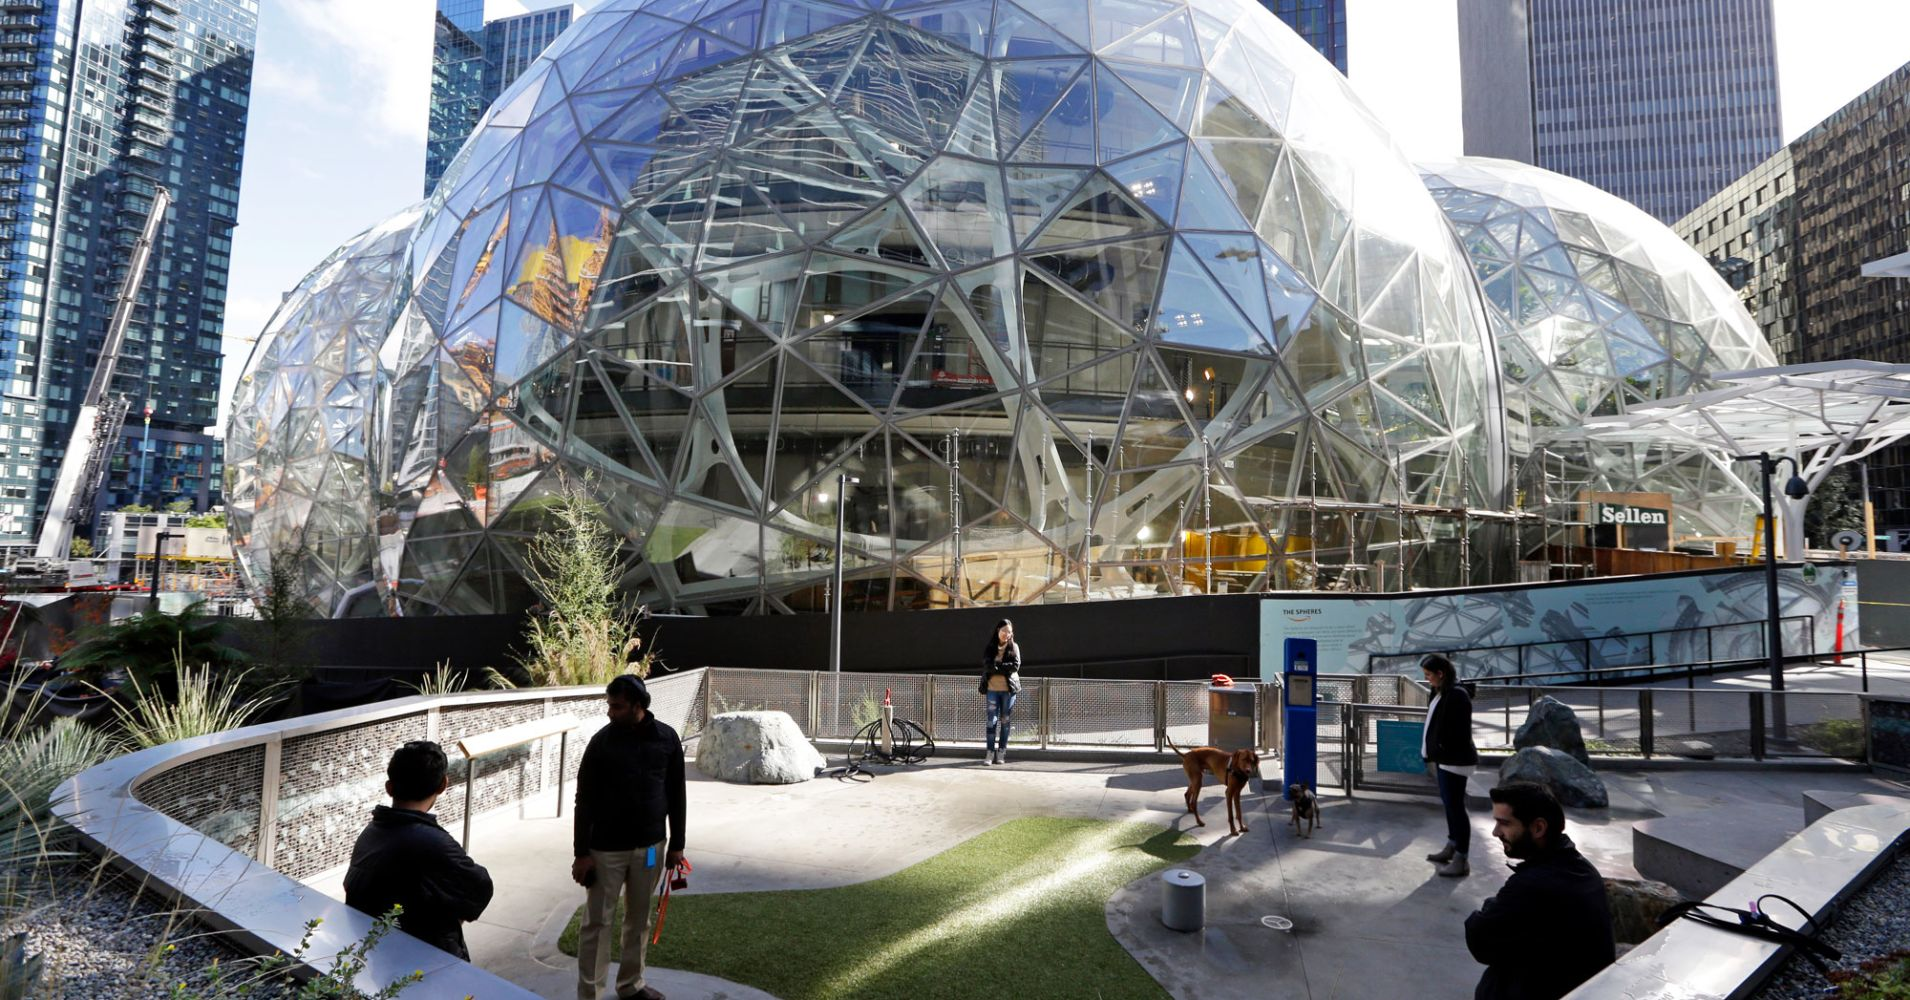 Buyer's Remorse? Amazon Could be Getting Cold Feet in NY